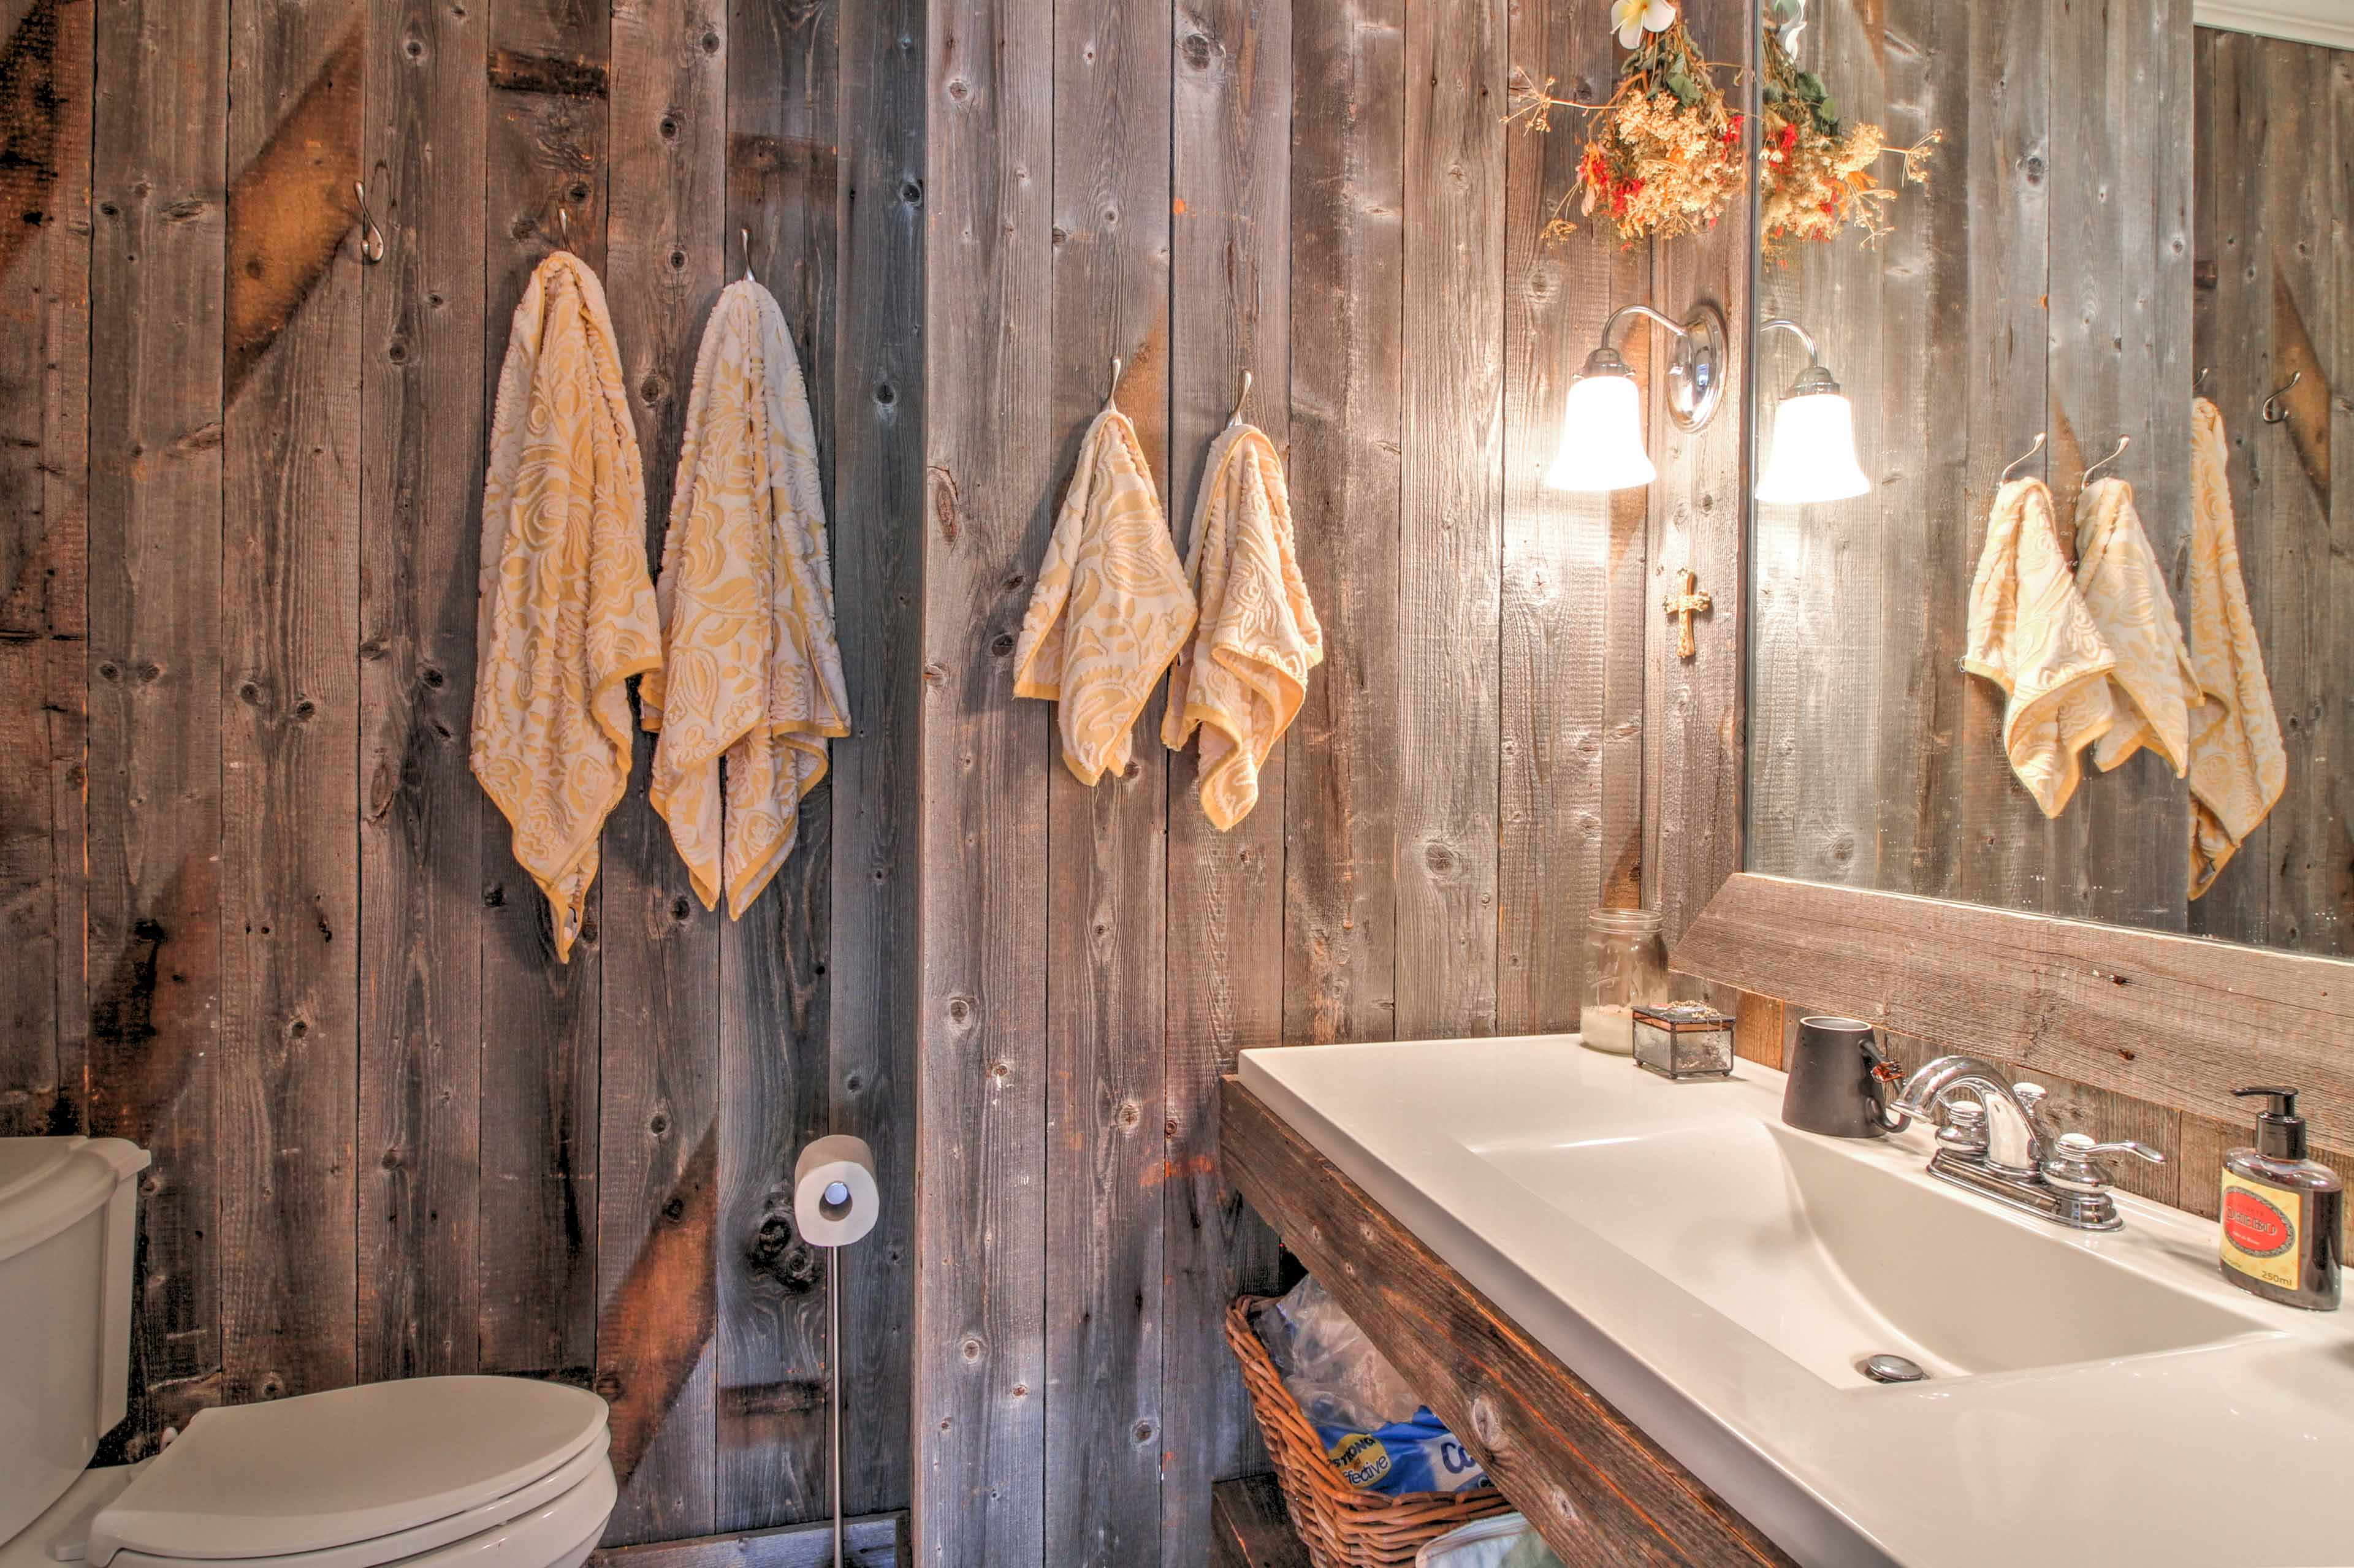 The home features 3.5 bathrooms for guests to use.